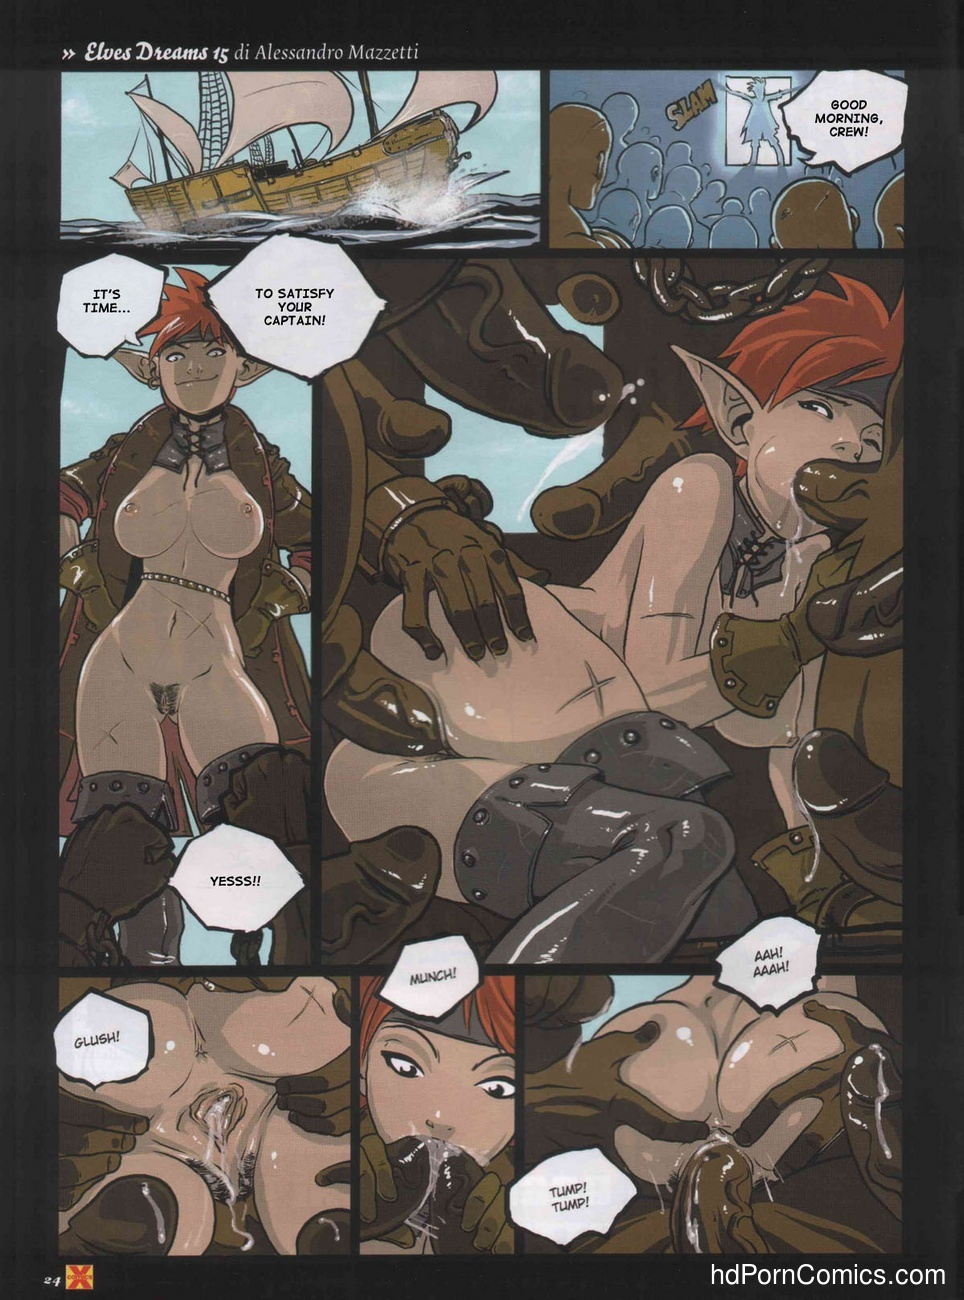 Elves Dreams 30 free sex comic